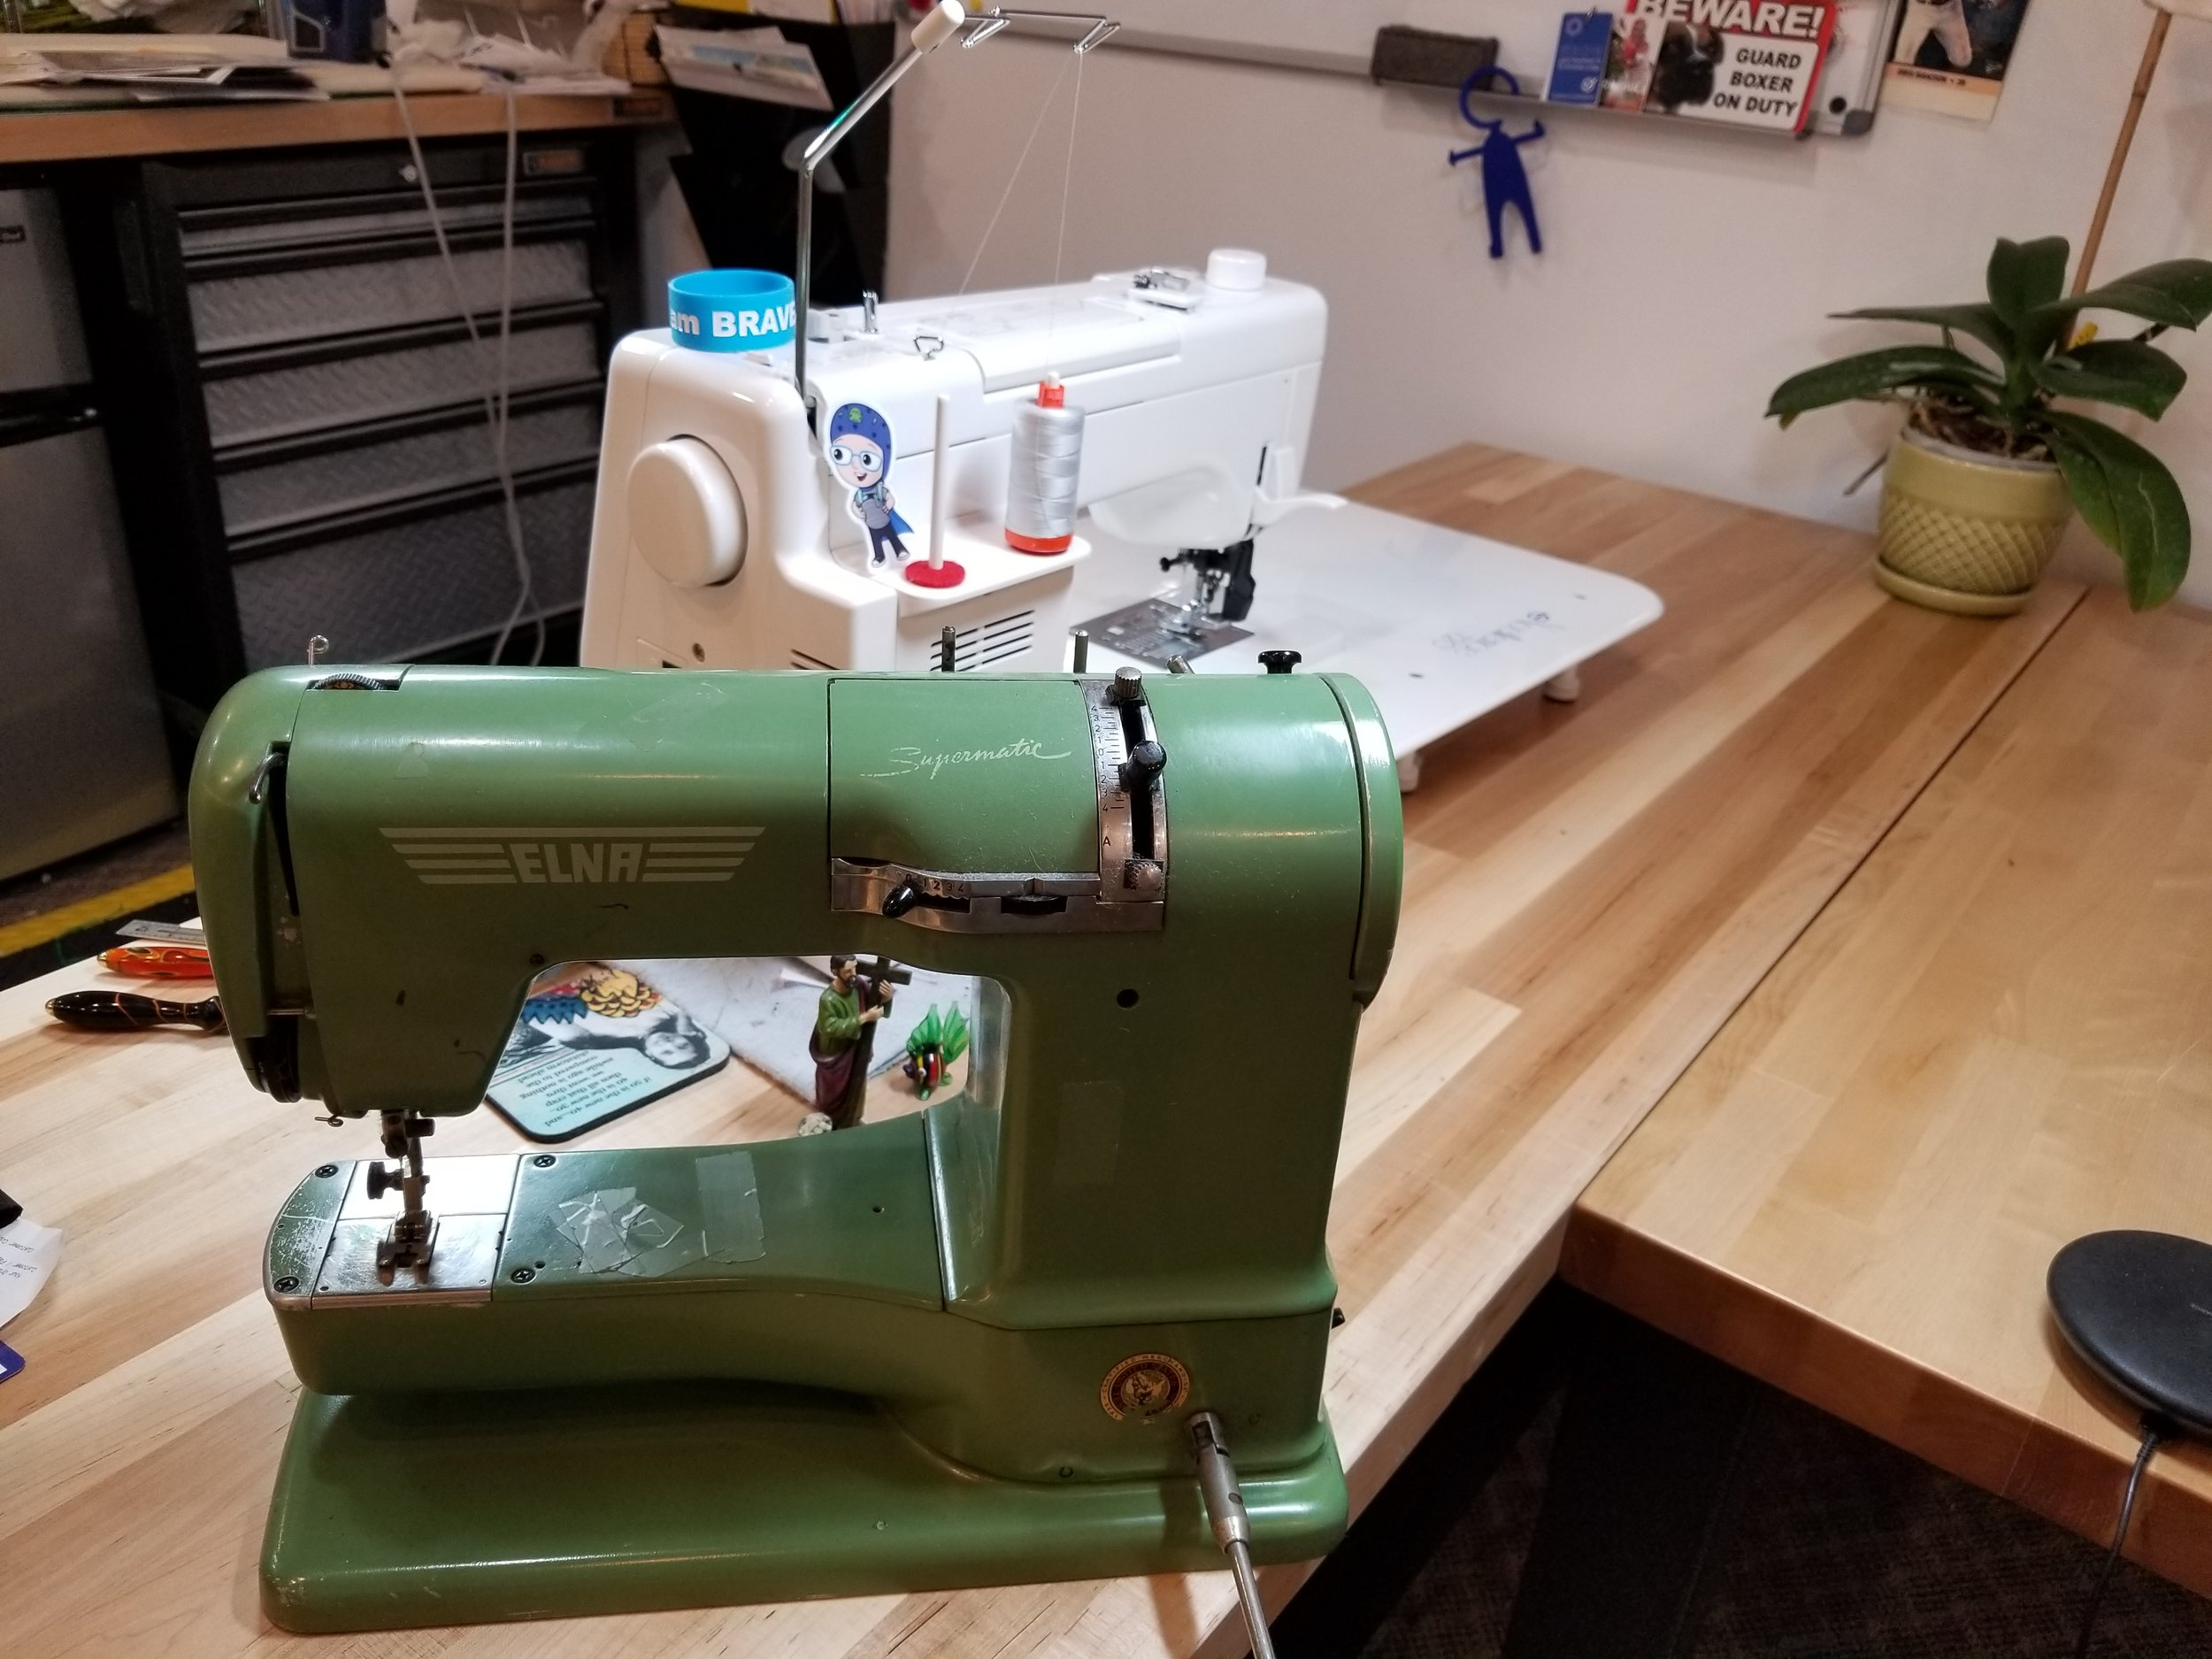 Above both models of Elna sewing machines.